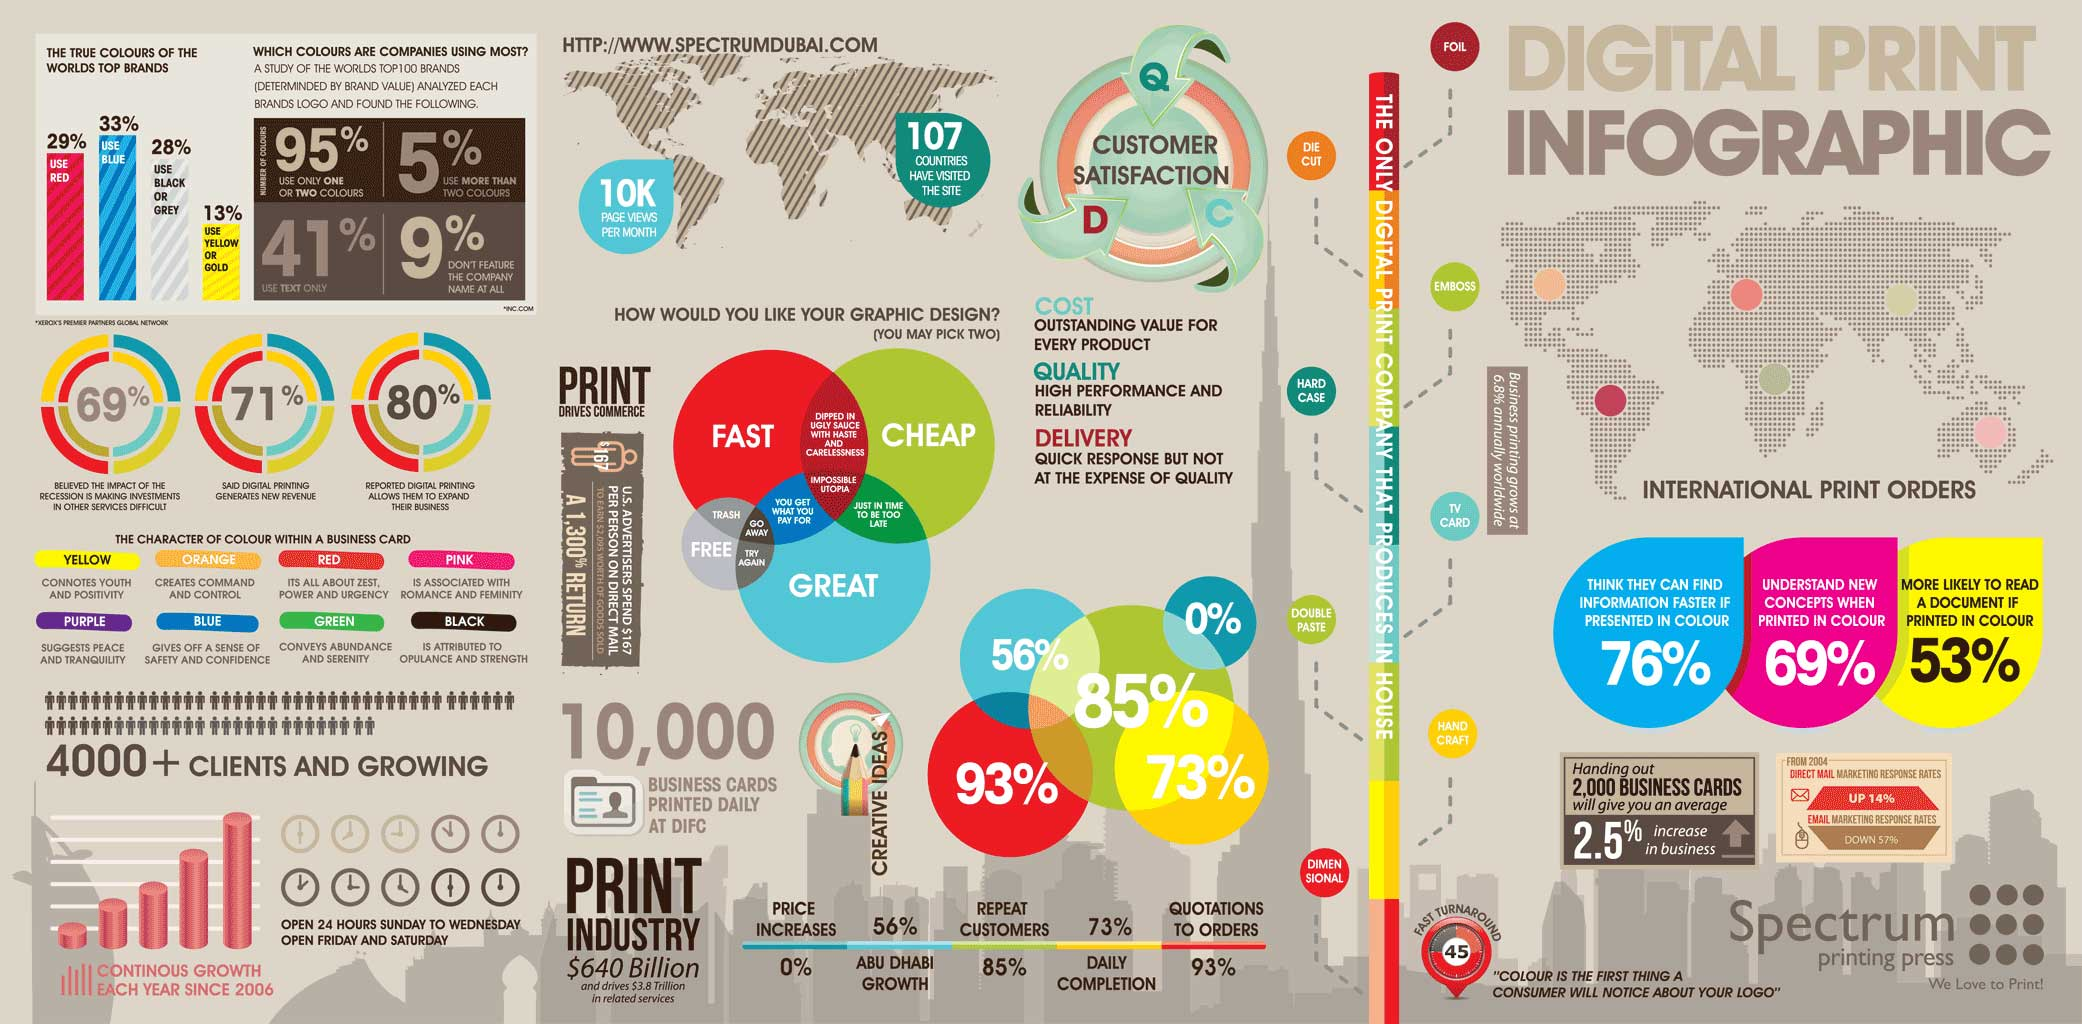 A Snapshot into the World of Digital Print [Infographic]